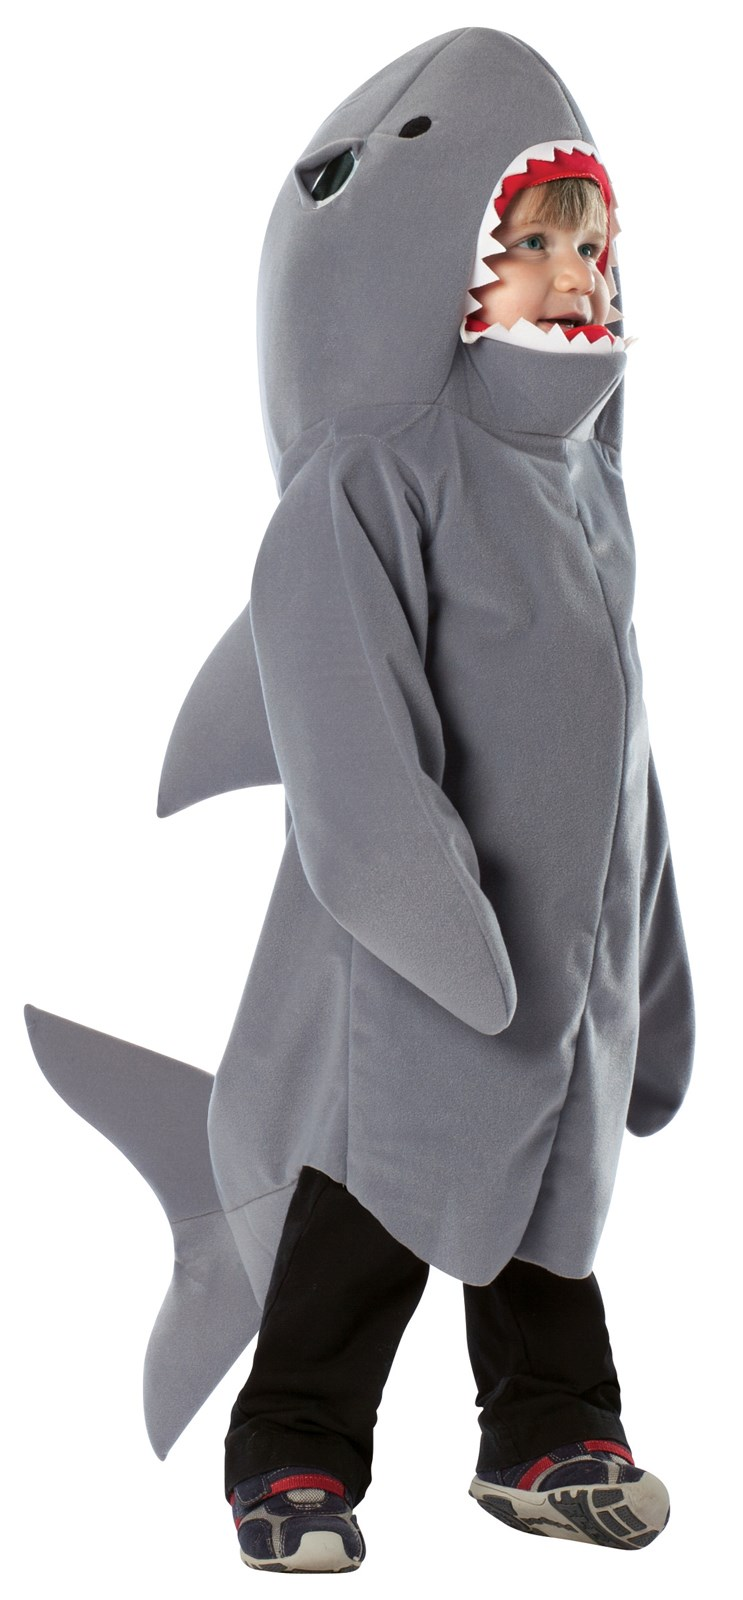 Shark Infant / Toddler Costume Infant 18-24Months